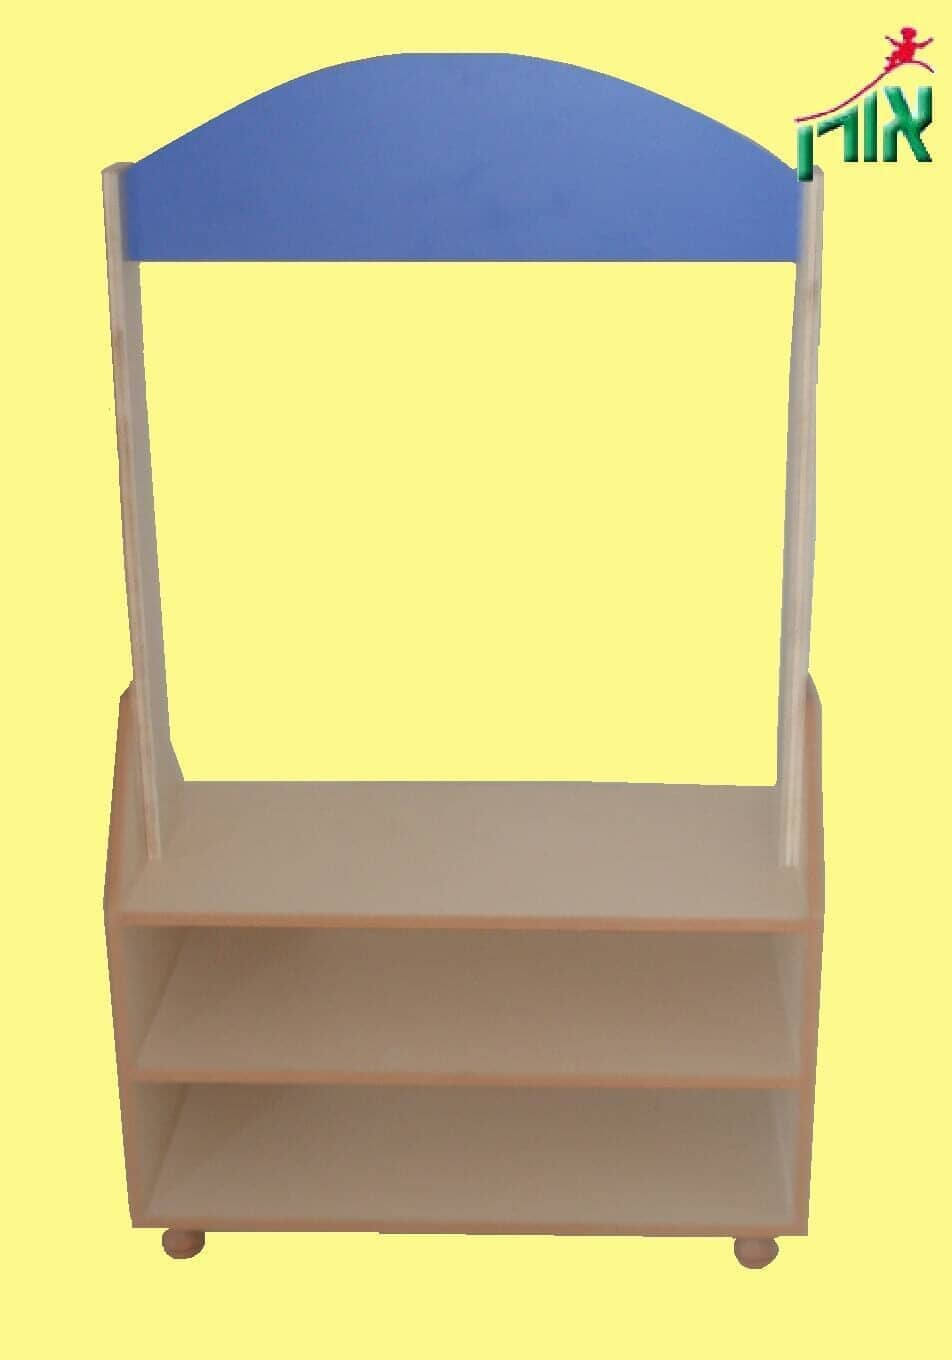 Kindergarten Furniture - Puppetry / Sales stand - 5124